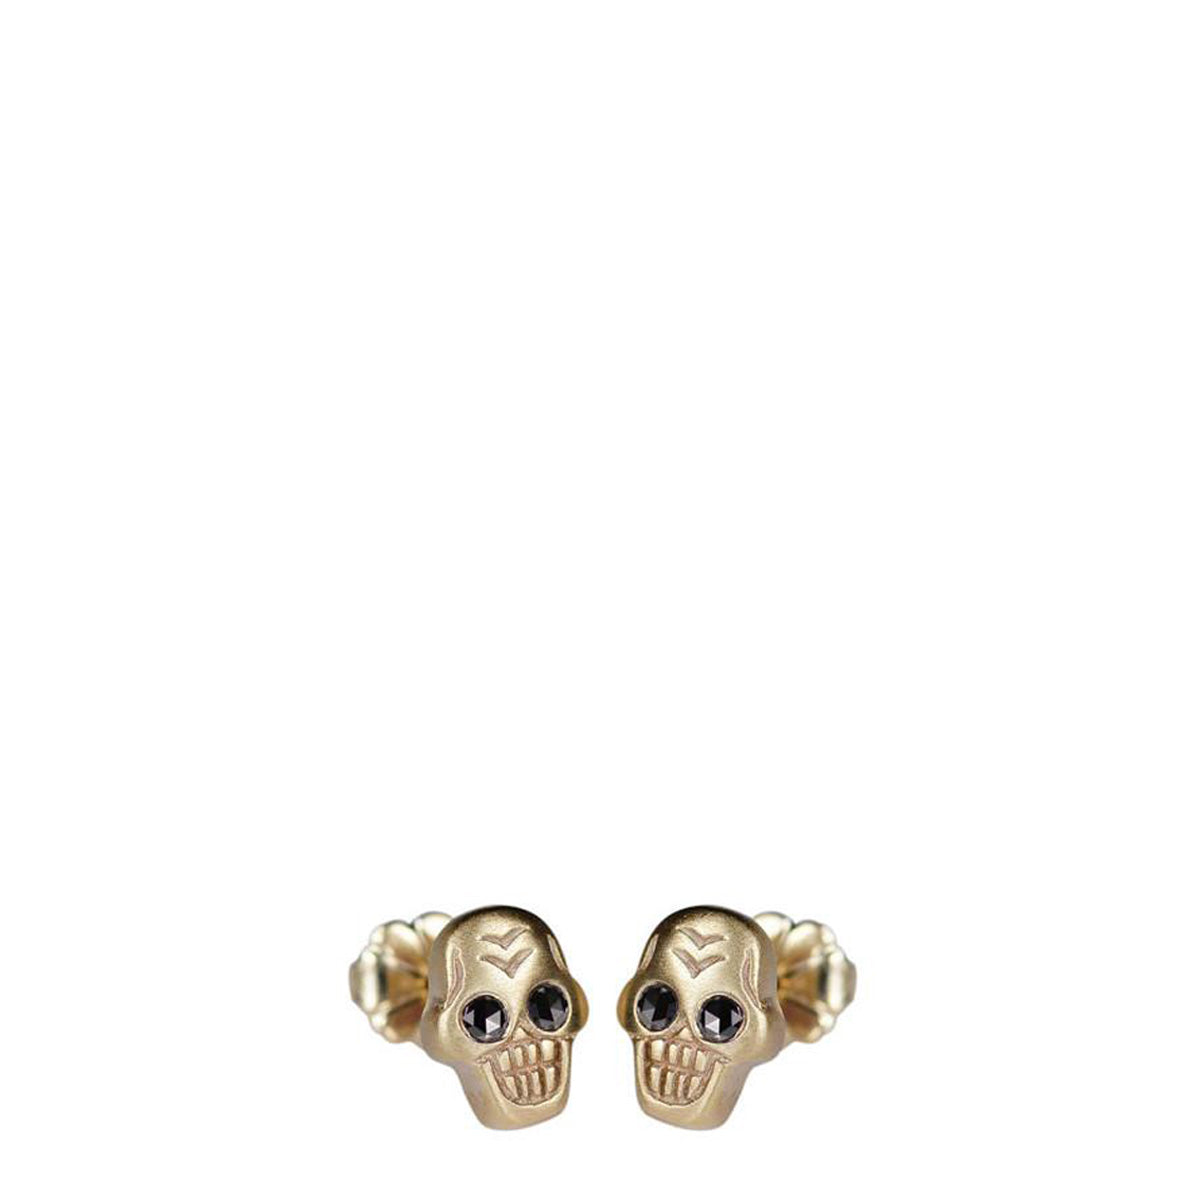 10K Gold Tiny Skull Stud Earrings with Black Diamond Eyes